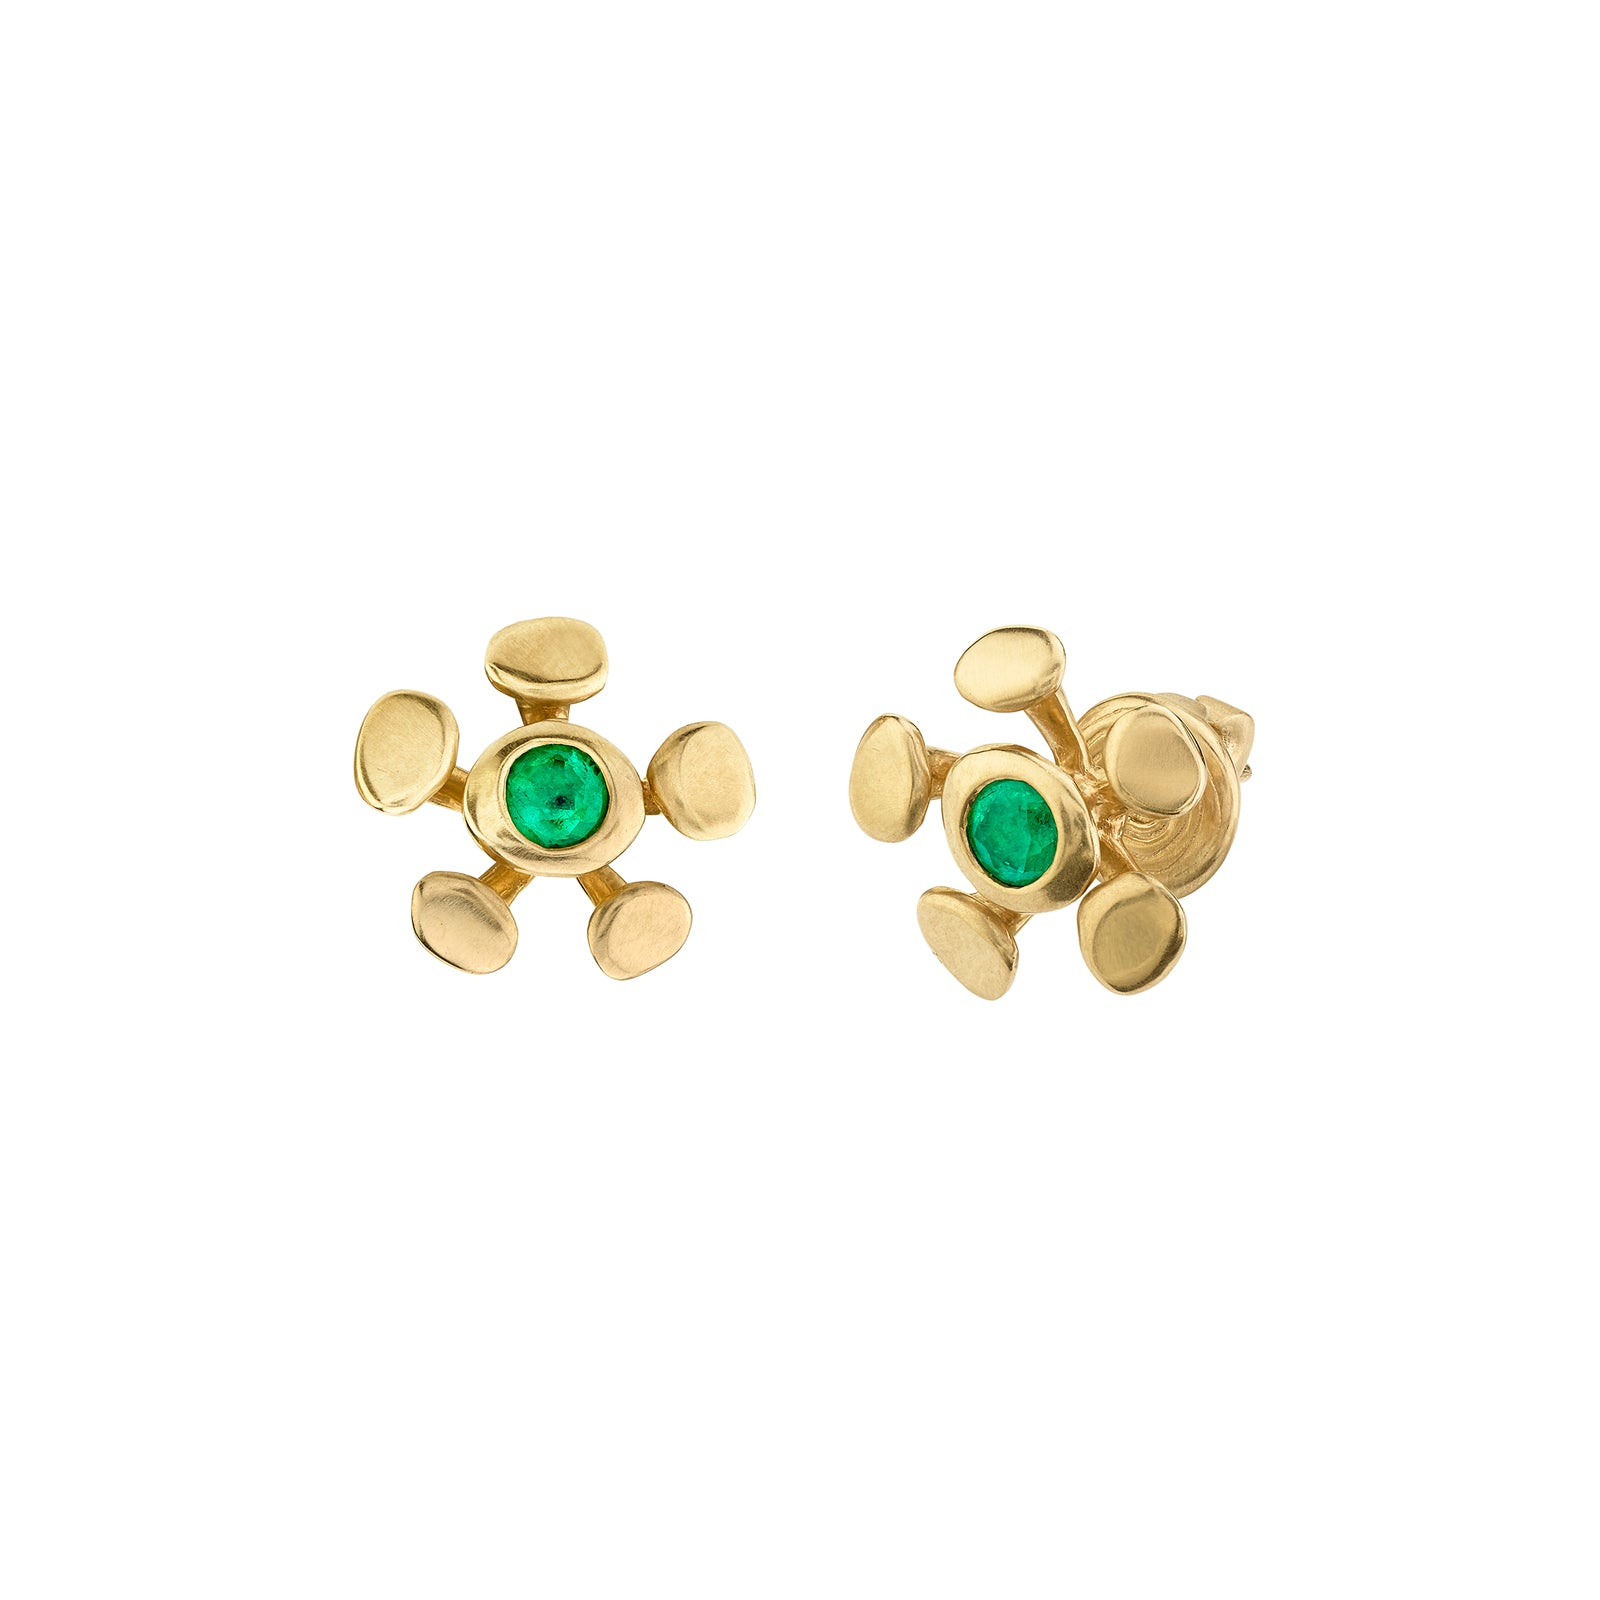 VRAM Chrona Studs - Earrings - Broken English Jewelry